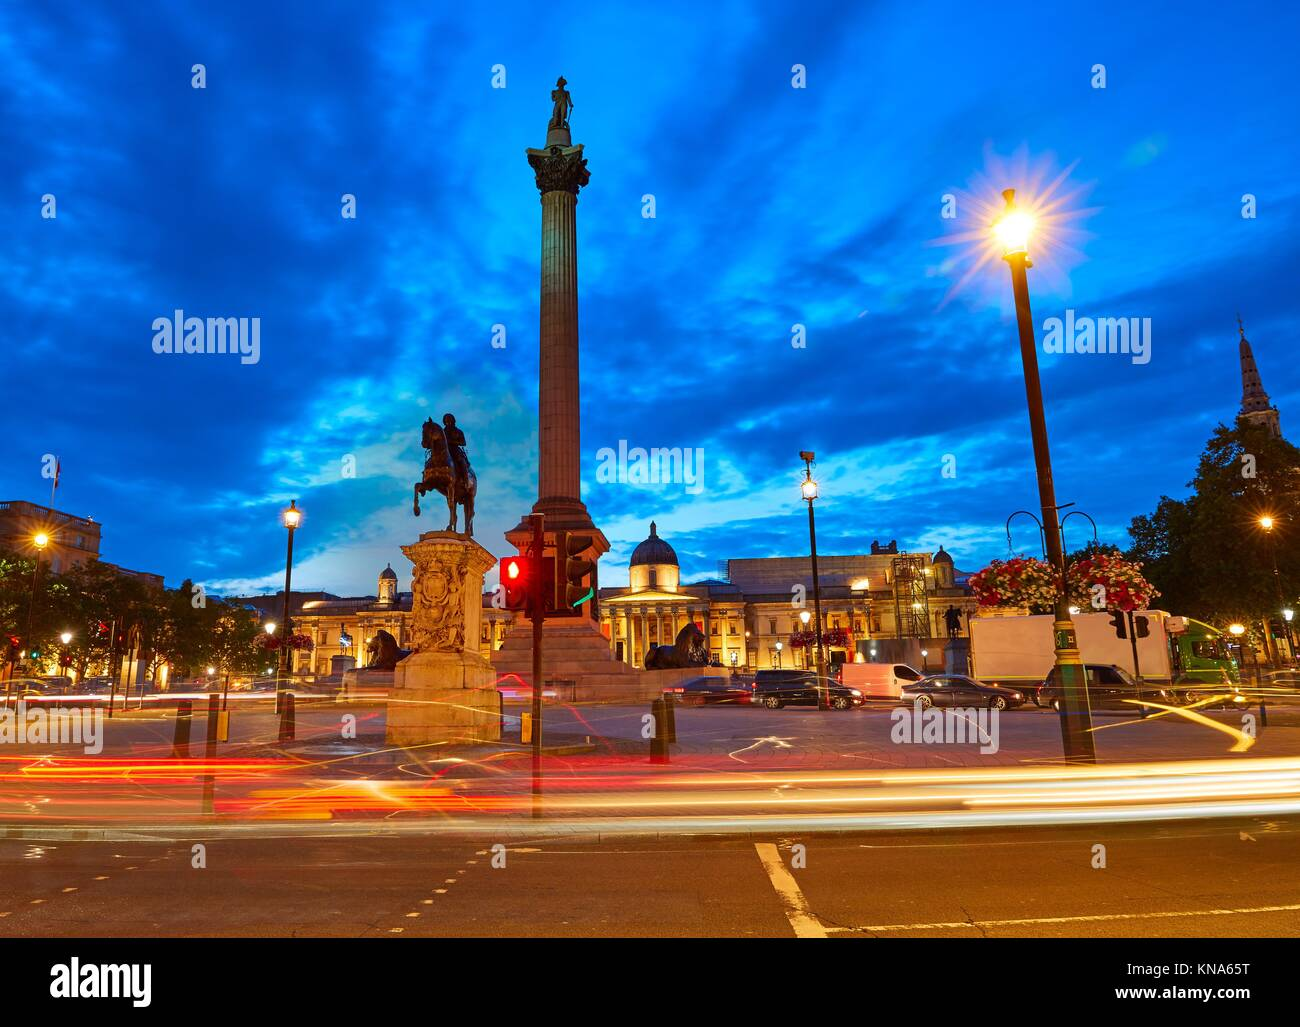 London Trafalgar Square sunset Nelson column in England. - Stock Image